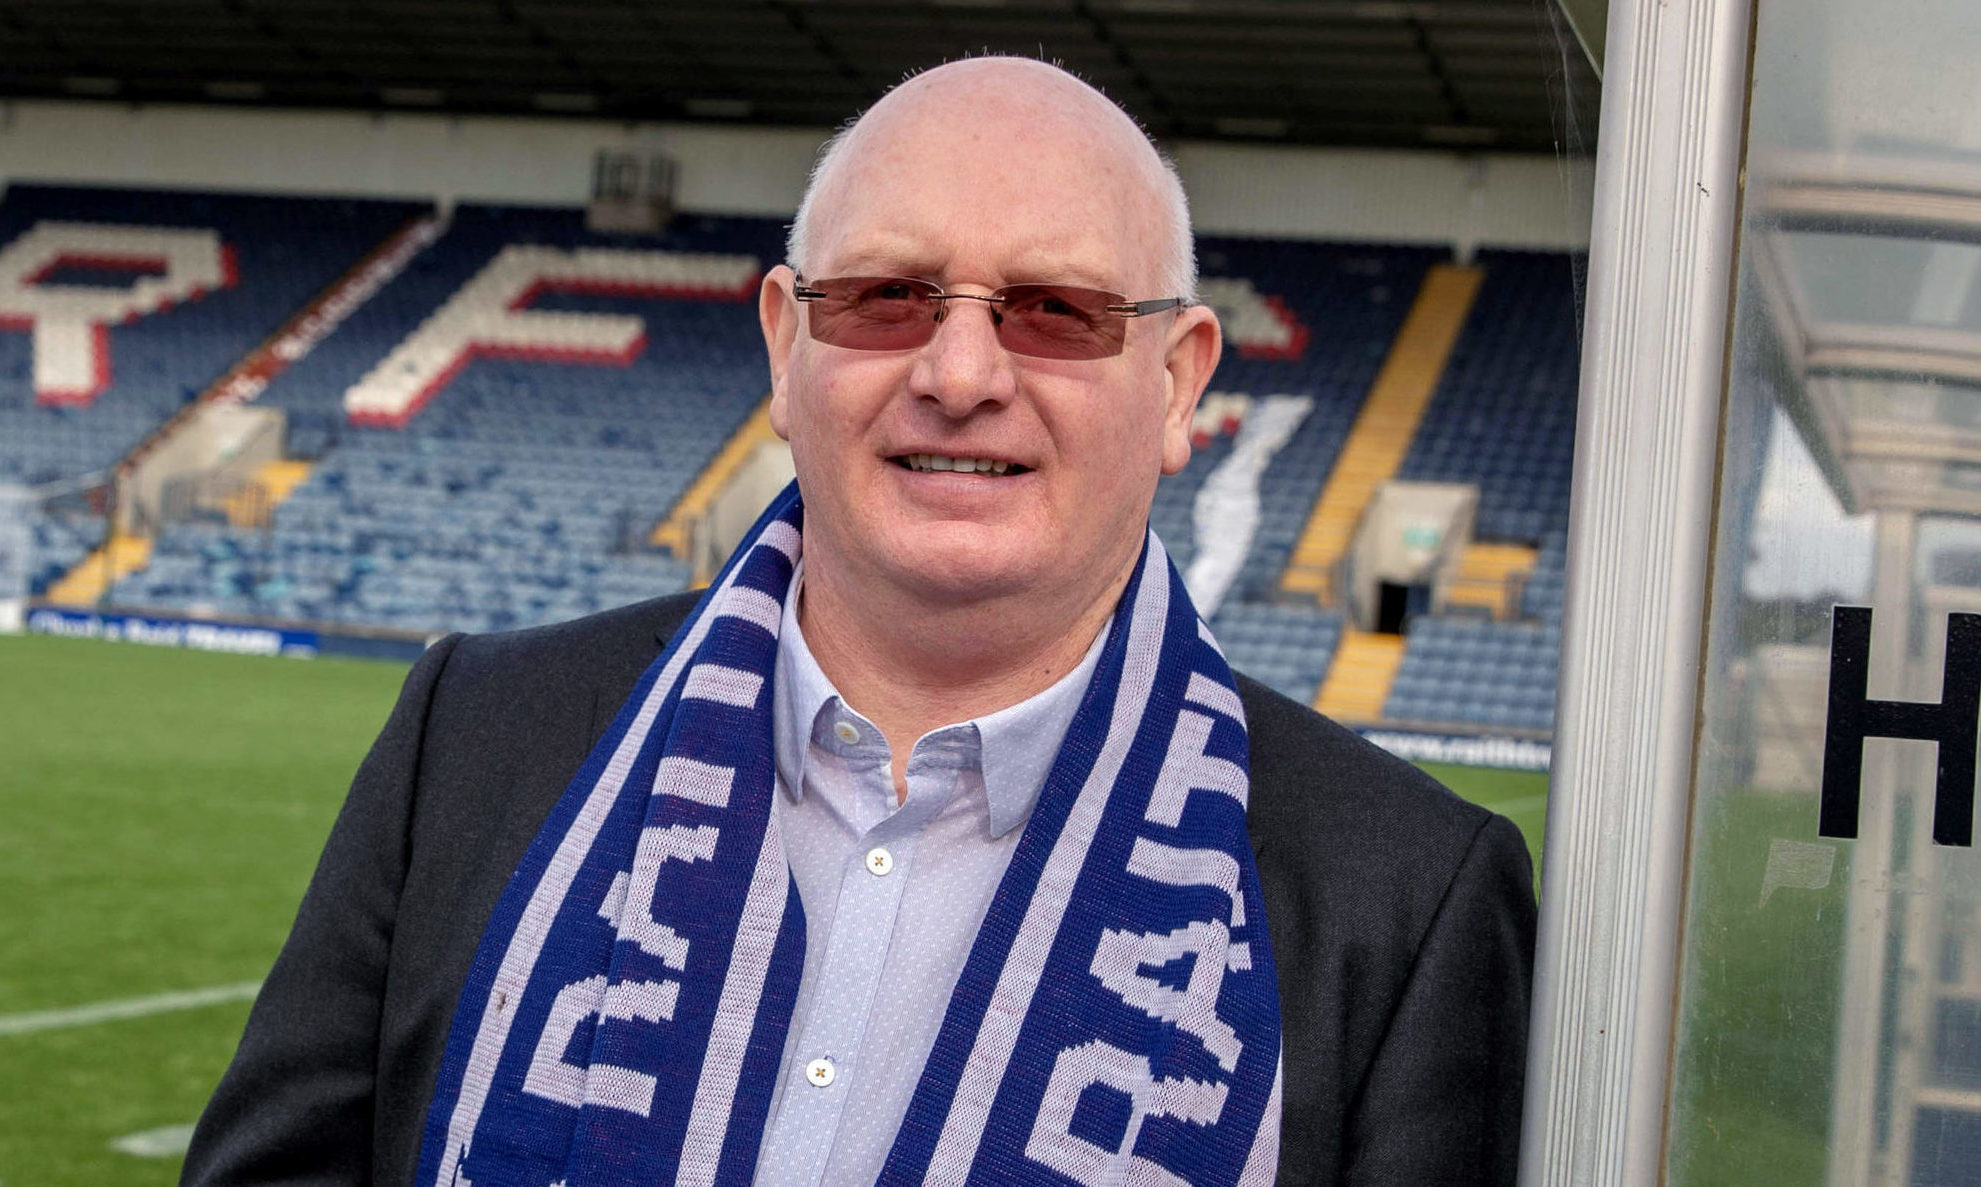 John McGlynn guided Raith Rovers to League One title last season